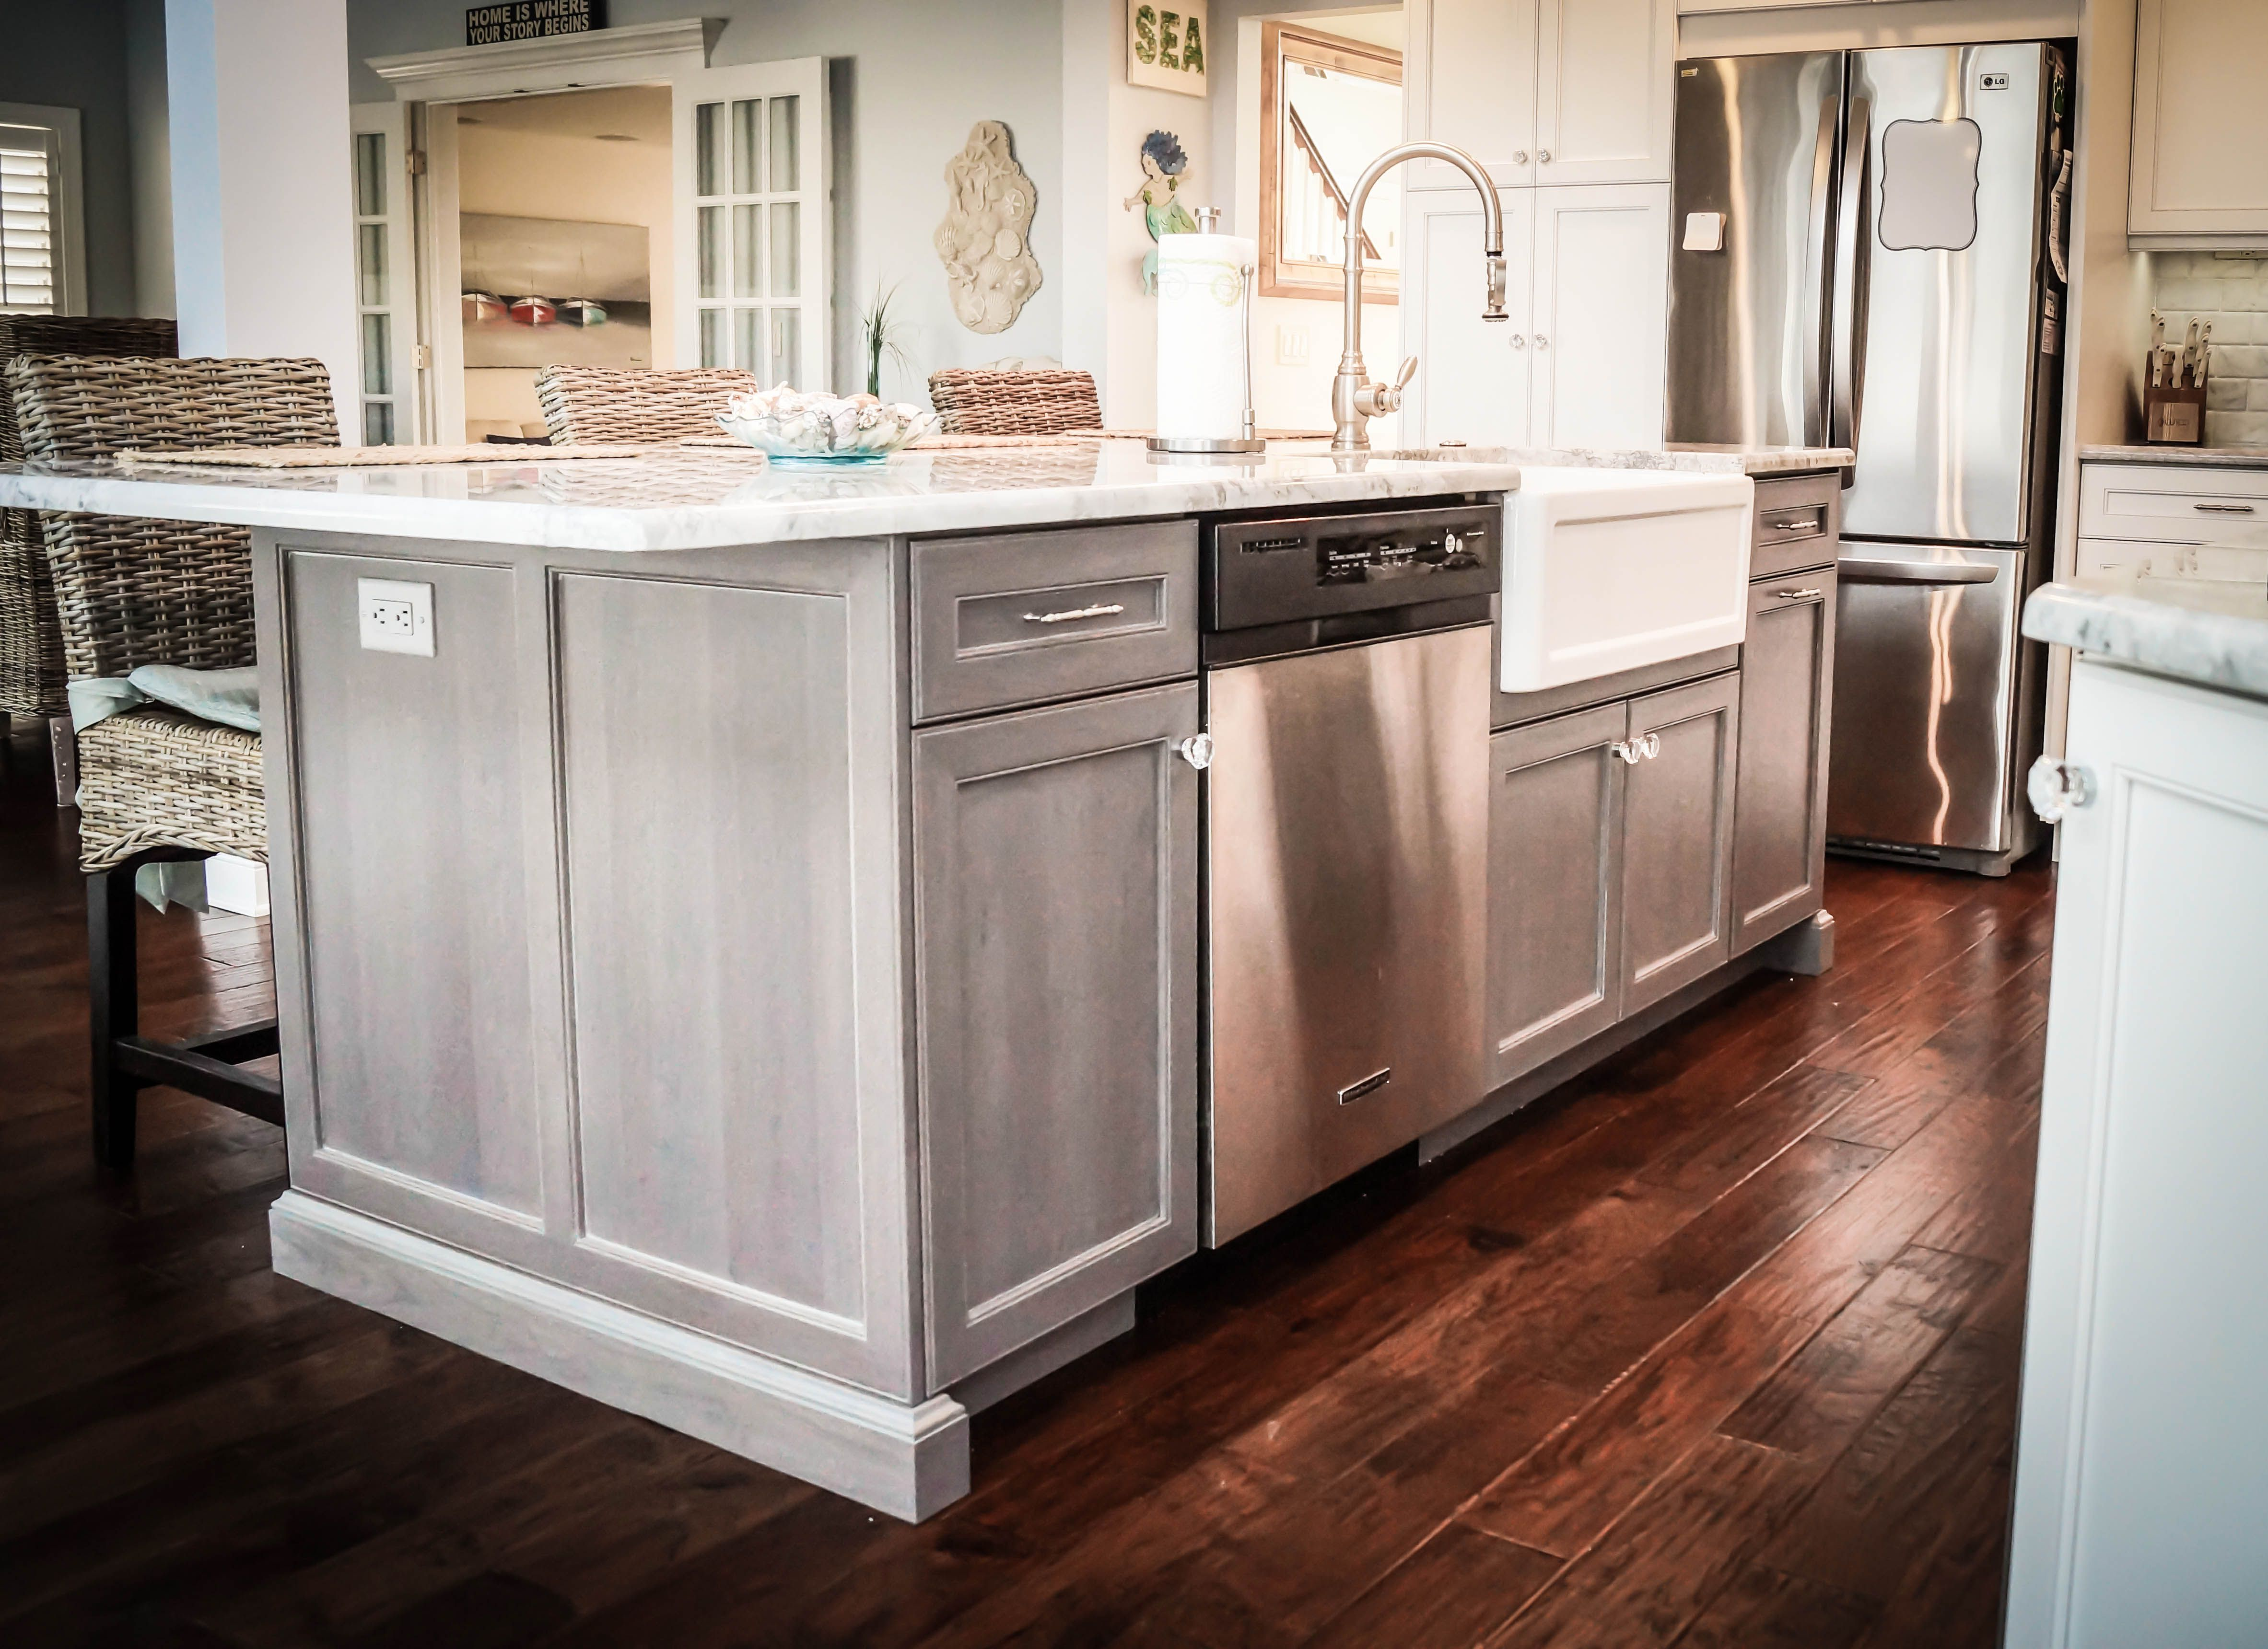 The Well Designed Kitchen Brick New Jerseydesign Line Kitchens Extraordinary Design Line Kitchens Design Ideas